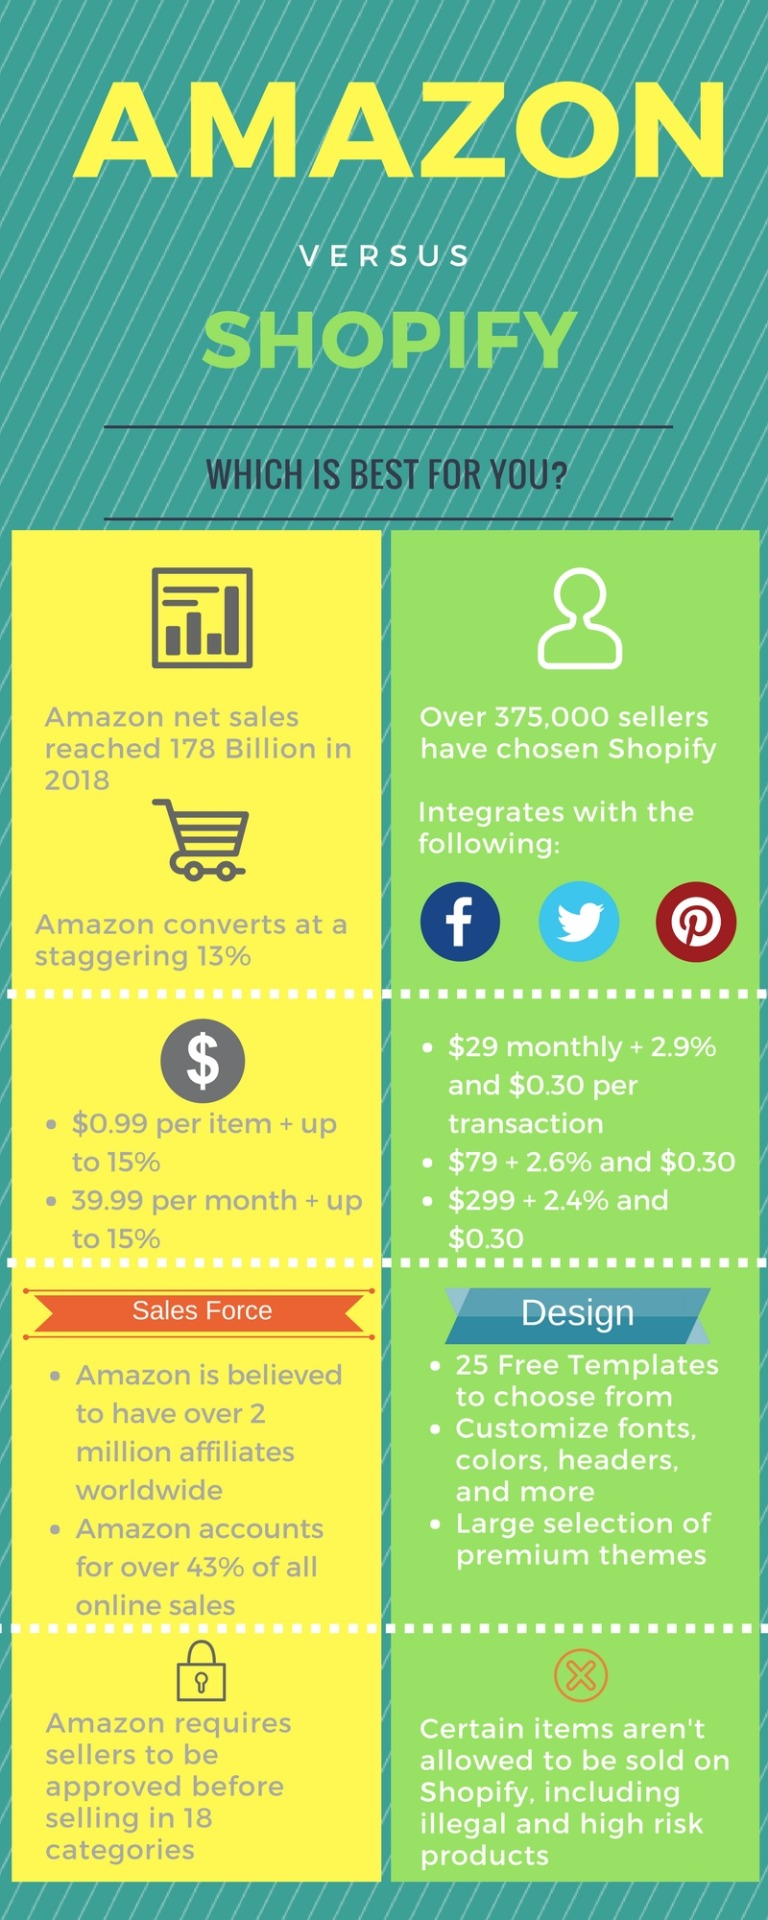 Amazon vs. Shopify - Which is right for you?